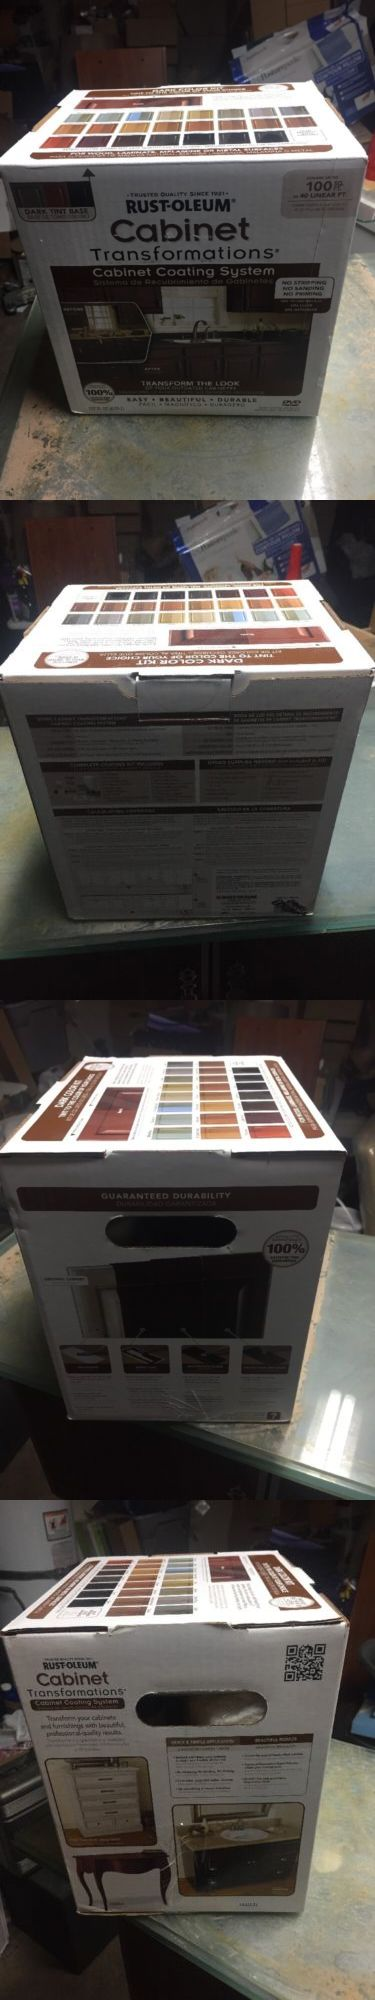 Other Paint and Varnish 180980: Rust-Oleum 258240 Dark Tint Base Cabinet Transformations Kit, Small -> BUY IT NOW ONLY: $59.99 on eBay!